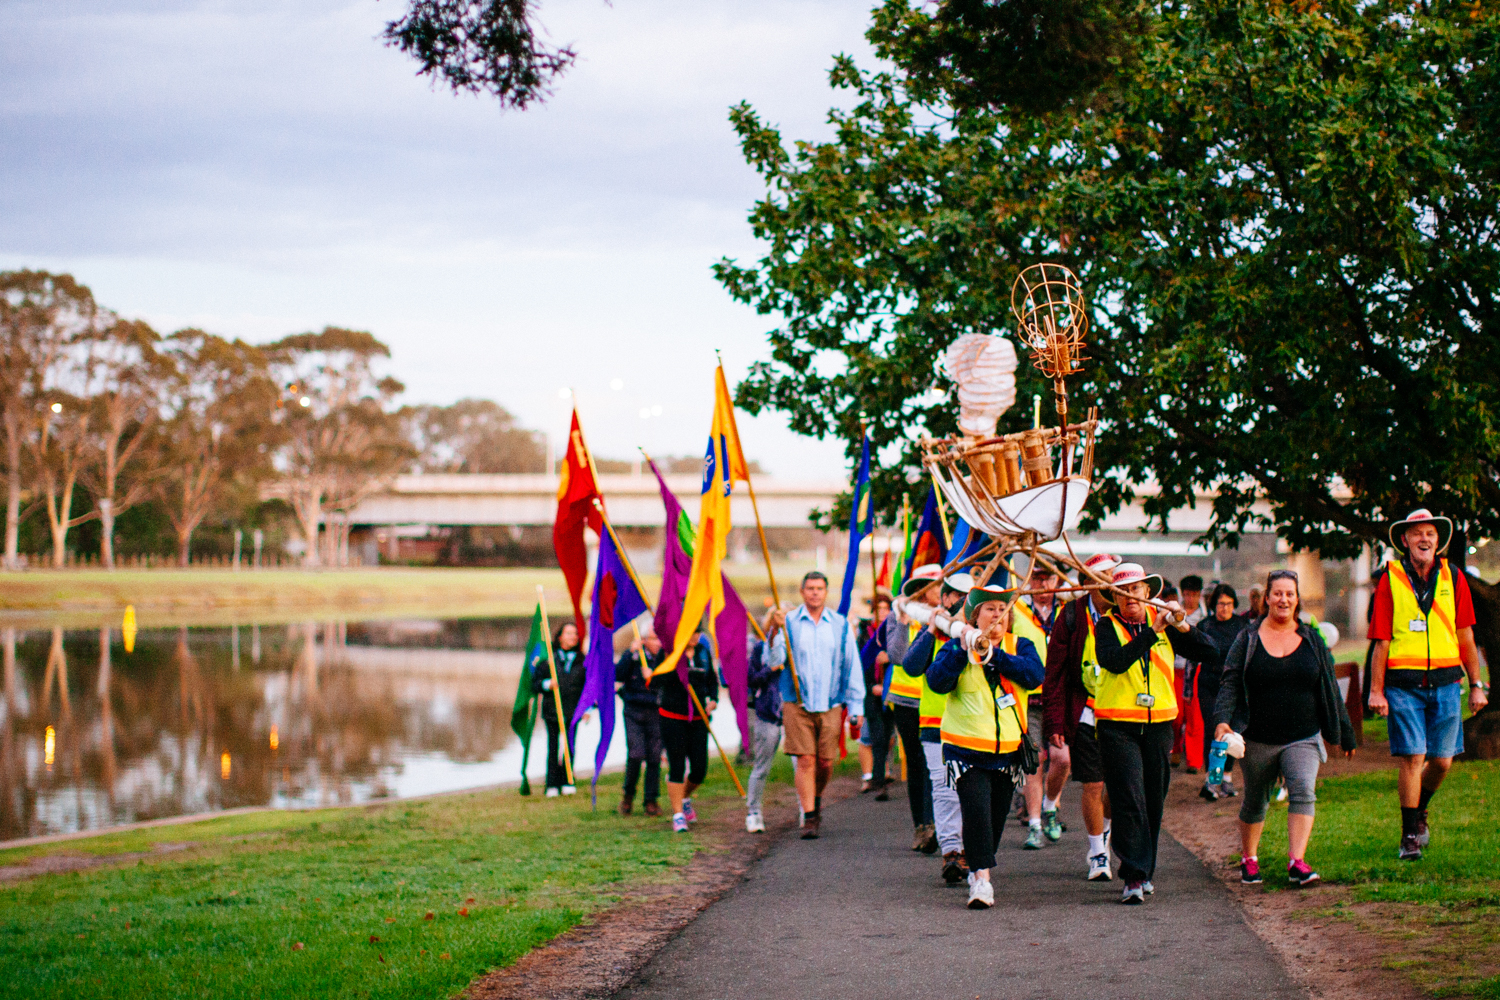 Crossing supervisors carrying Canoe alongside the Barwon River towards Christies Rd.   Image by Dean Walters Photography.